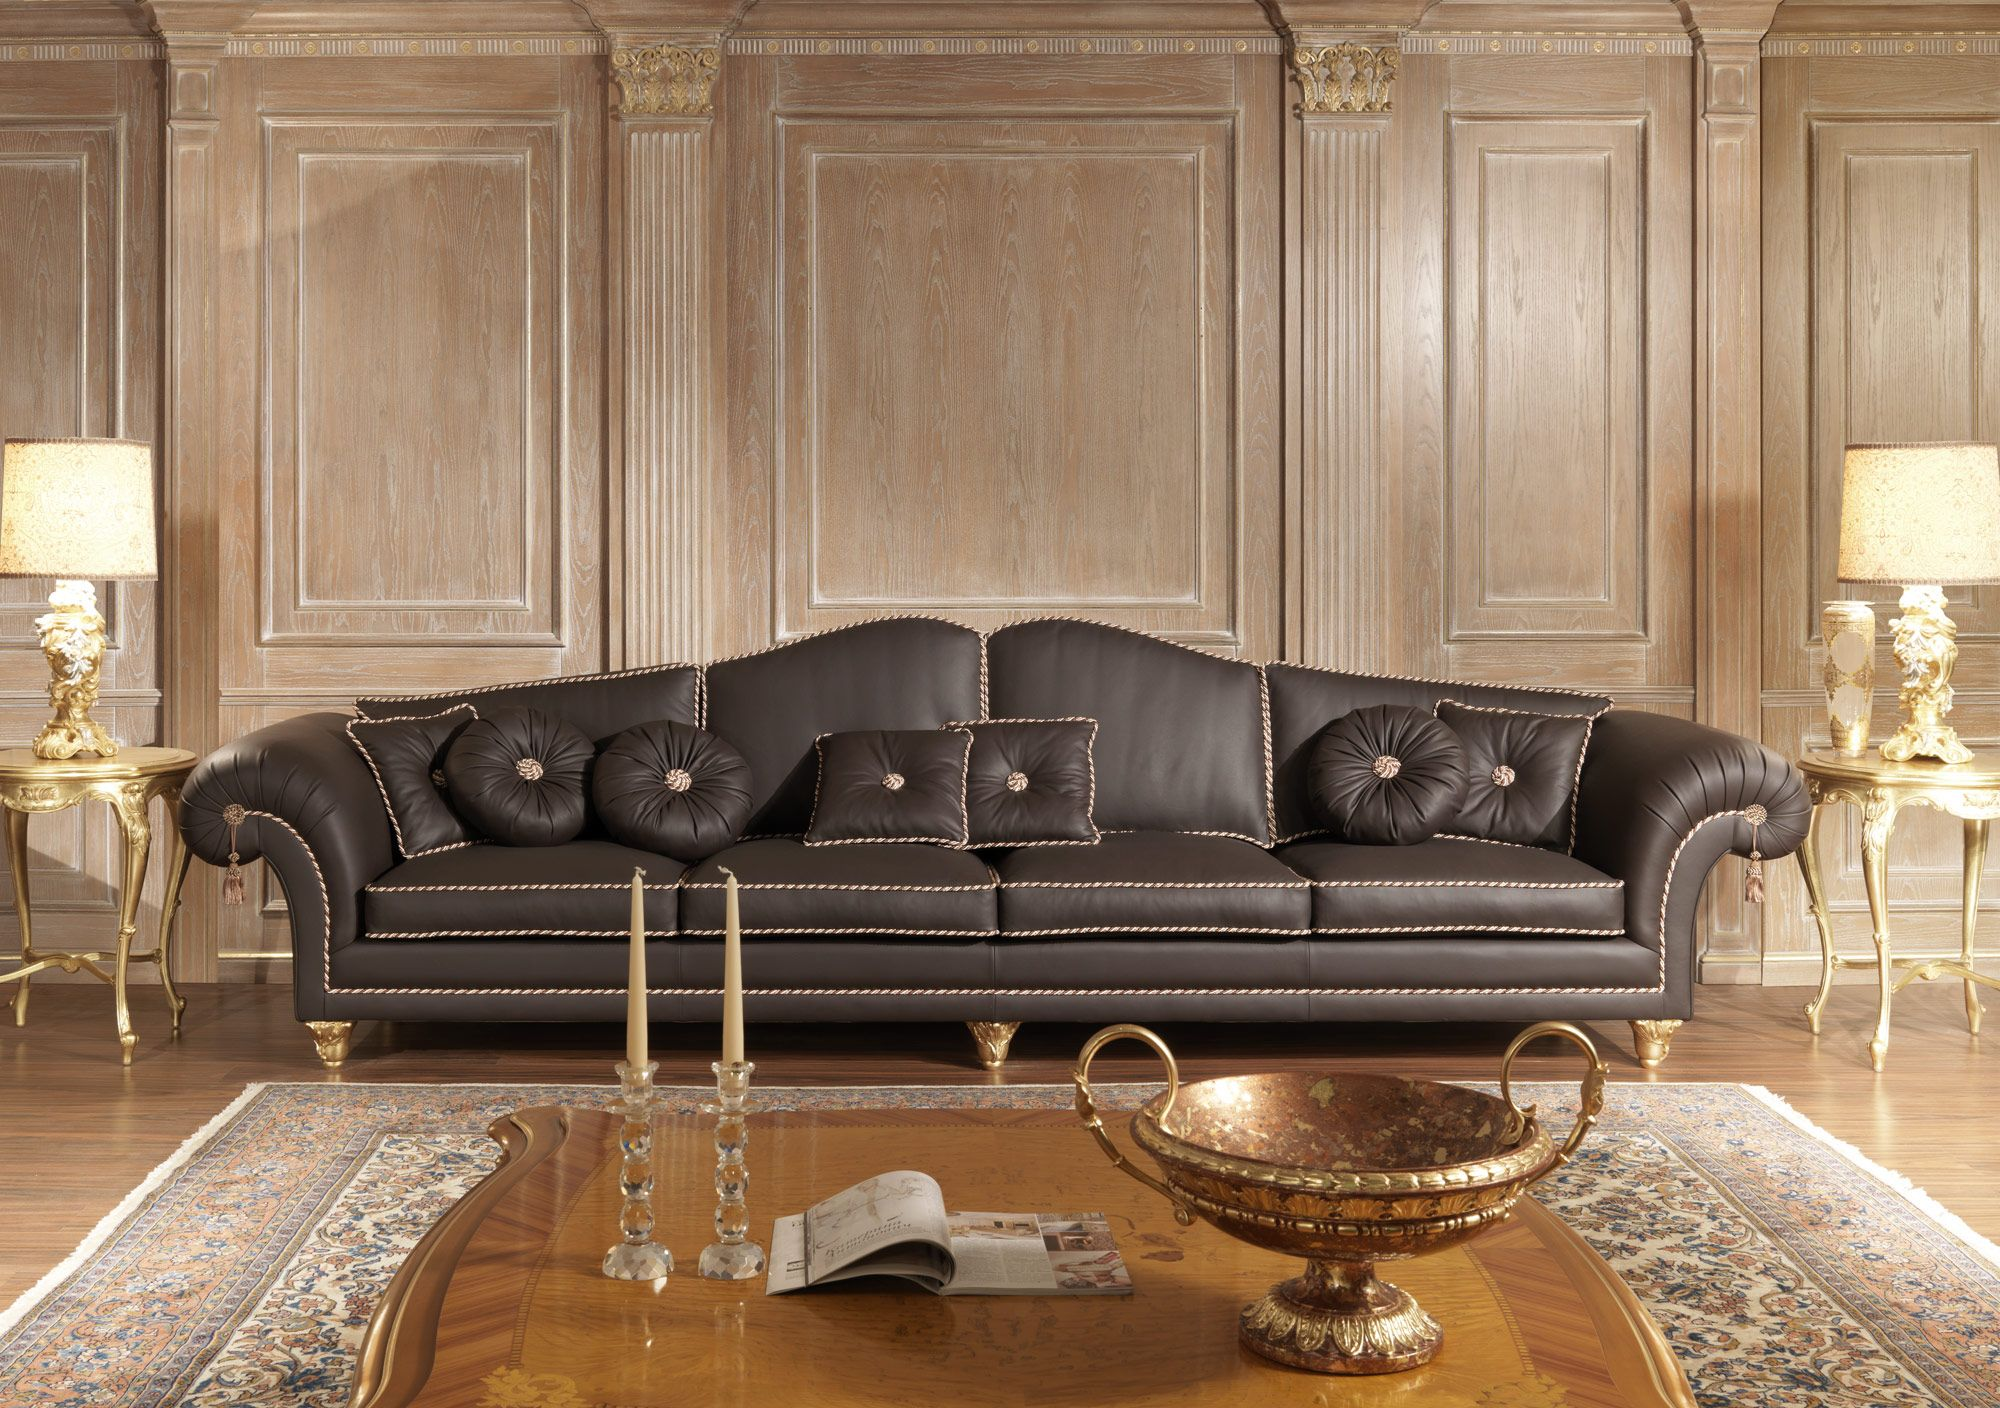 Classic Sofas For Luxury Living Rooms Luxury Living Room Classic Sofa Designs Luxury Sofa